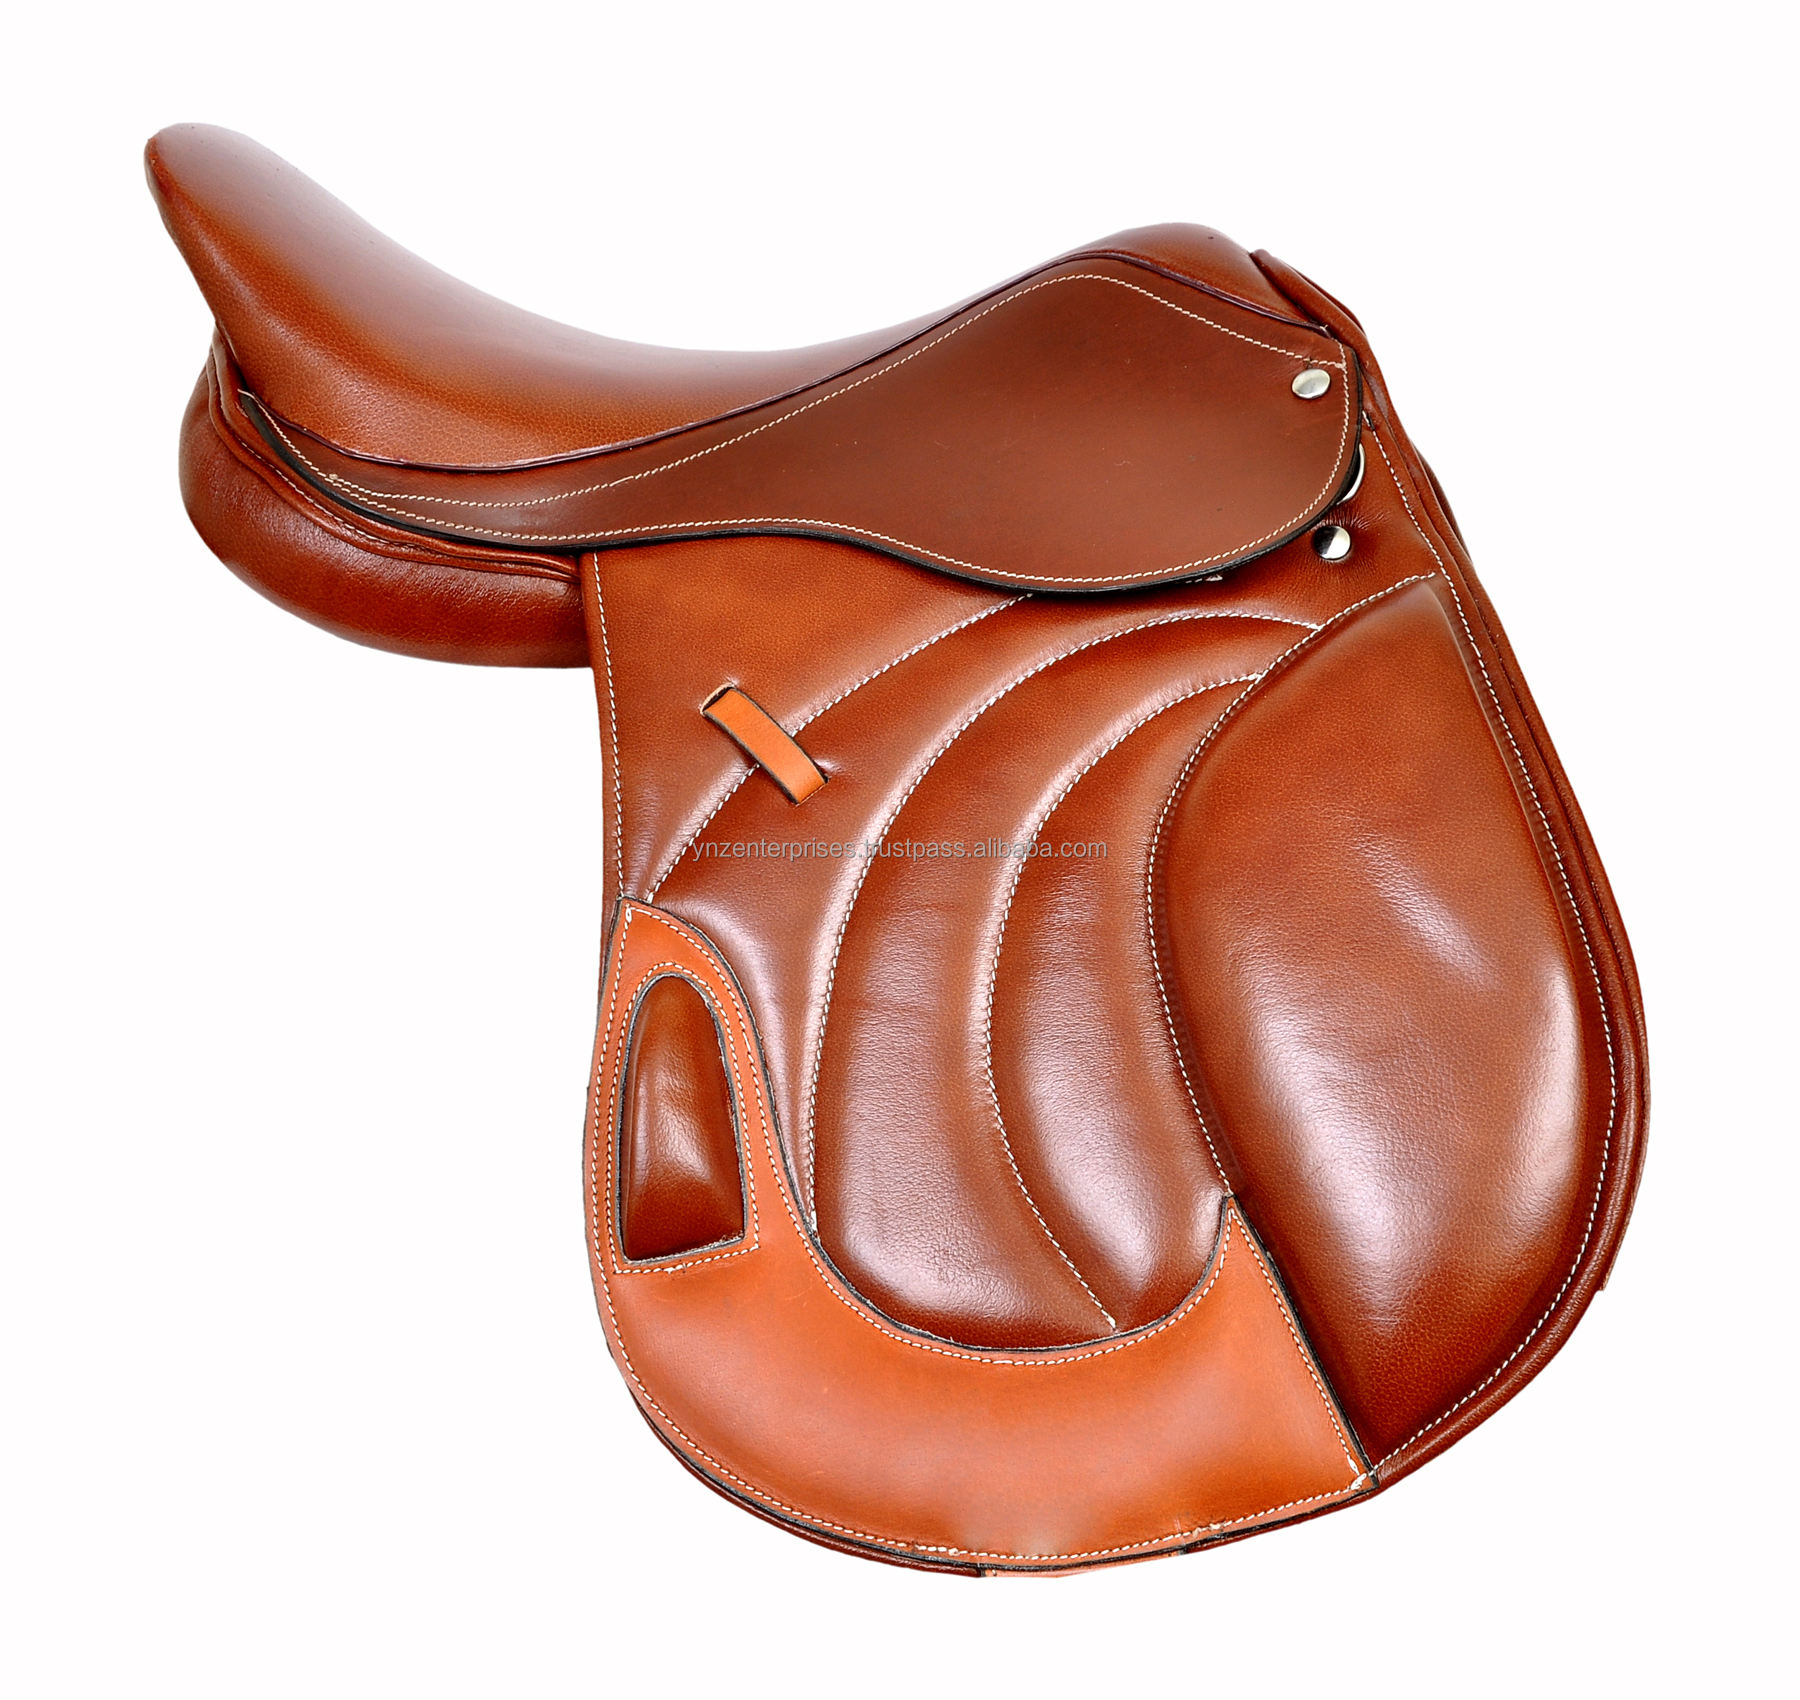 Premium Leather English Jumping Close Contact Horse Saddle And Tack Adult CLCON-003 Seat Size 14-18